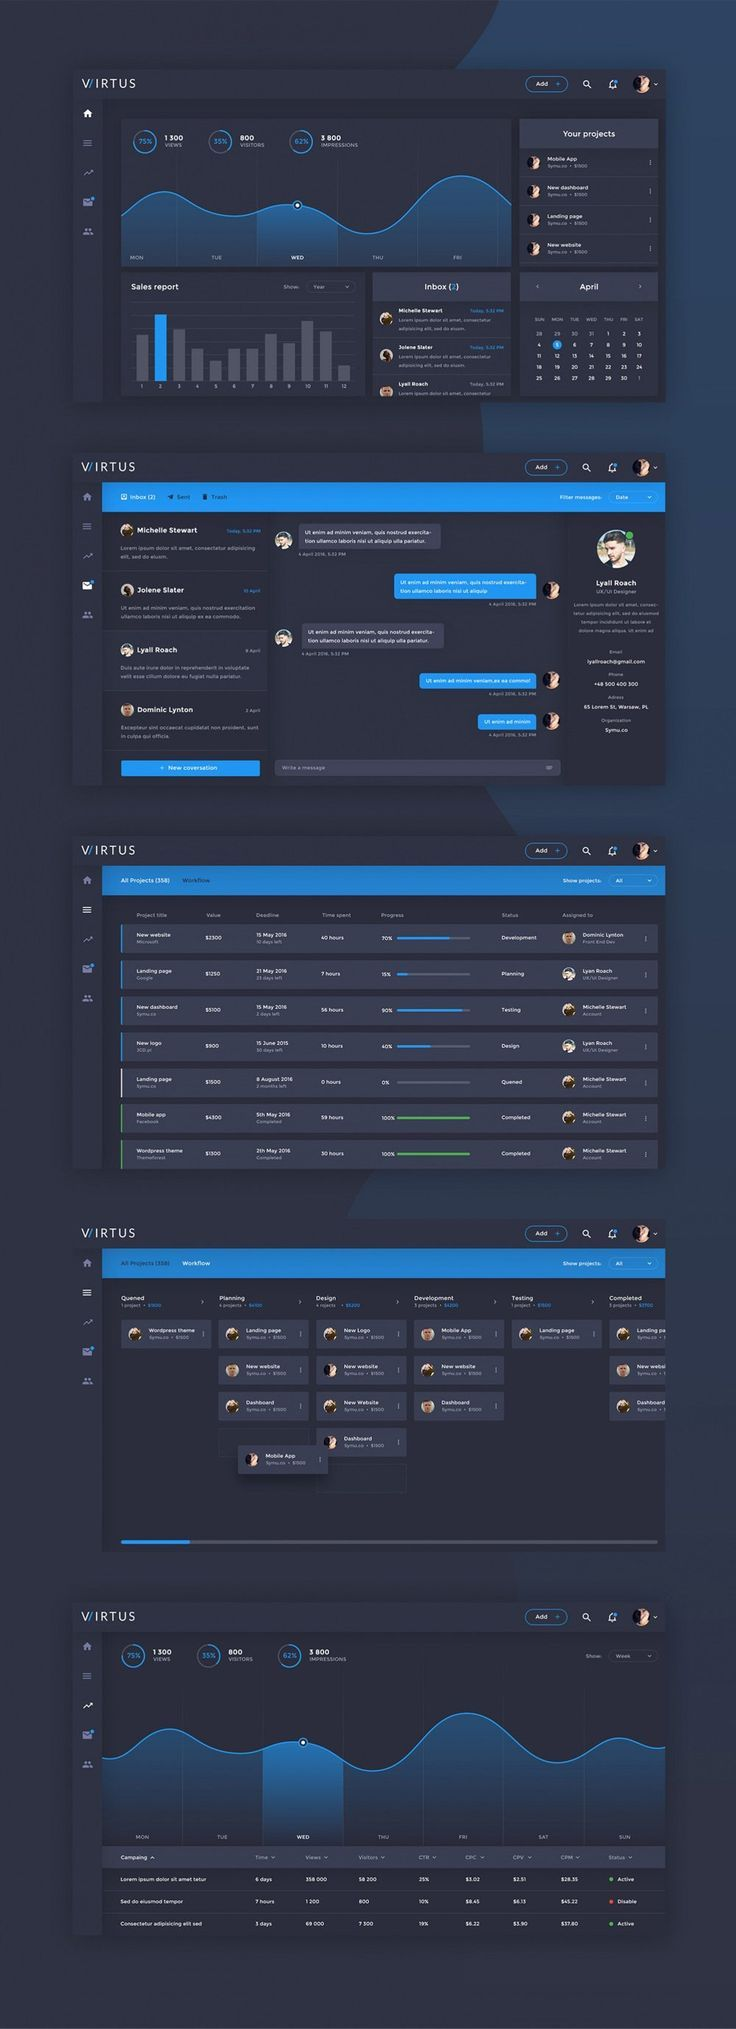 Virtus Dashboard Template PSD. If you like UX, design, or design thinking, check out theuxblog.com podcast https://itunes.apple.com/us/podcast/ux-blog-user-experience-design/id1127946001?mt=2